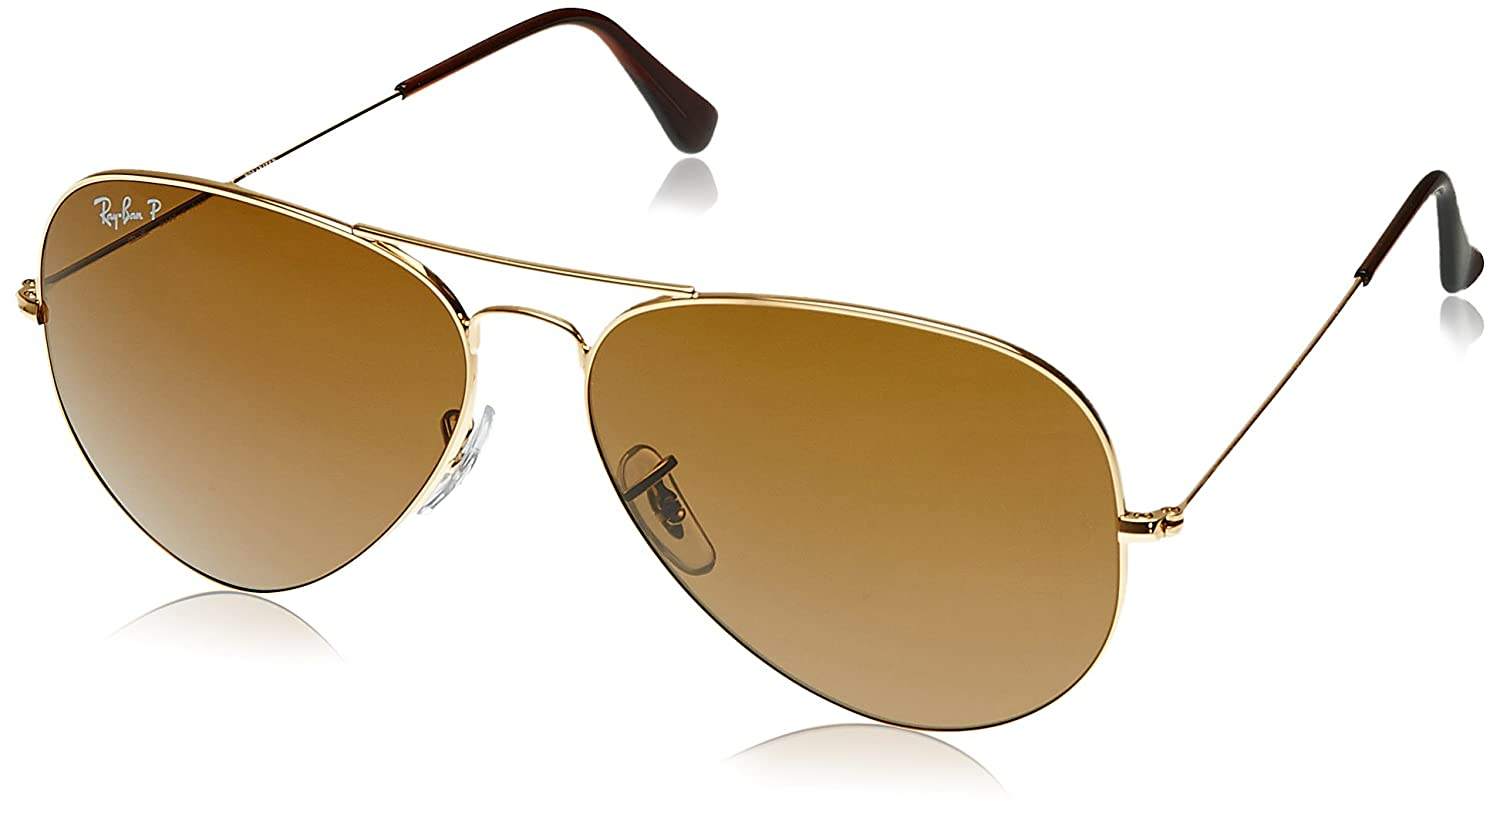 Buy Ray Ban Aviator Sunglasses Golden Rb3025 001 3355 At Amazon In